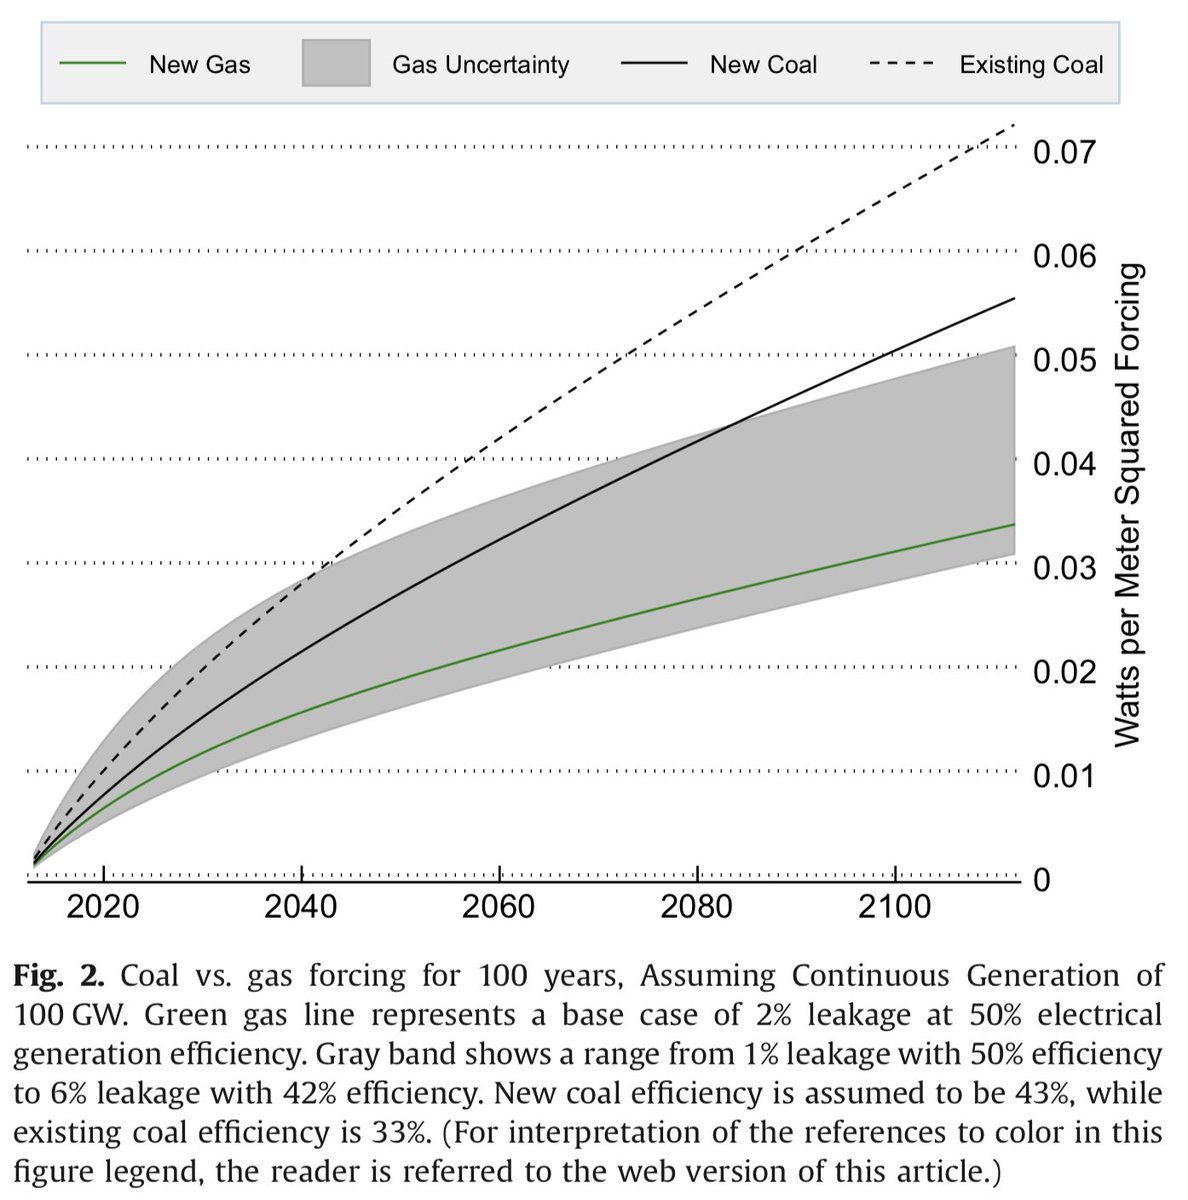 First, lets compare climate impacts of same amount of coal and gas generation if each is run for 100 years, based on their warming influence (radiative forcing). Dotted black line is a typical existing coal plant, while solid black line is a new state-of-the-art coal plant. 17/